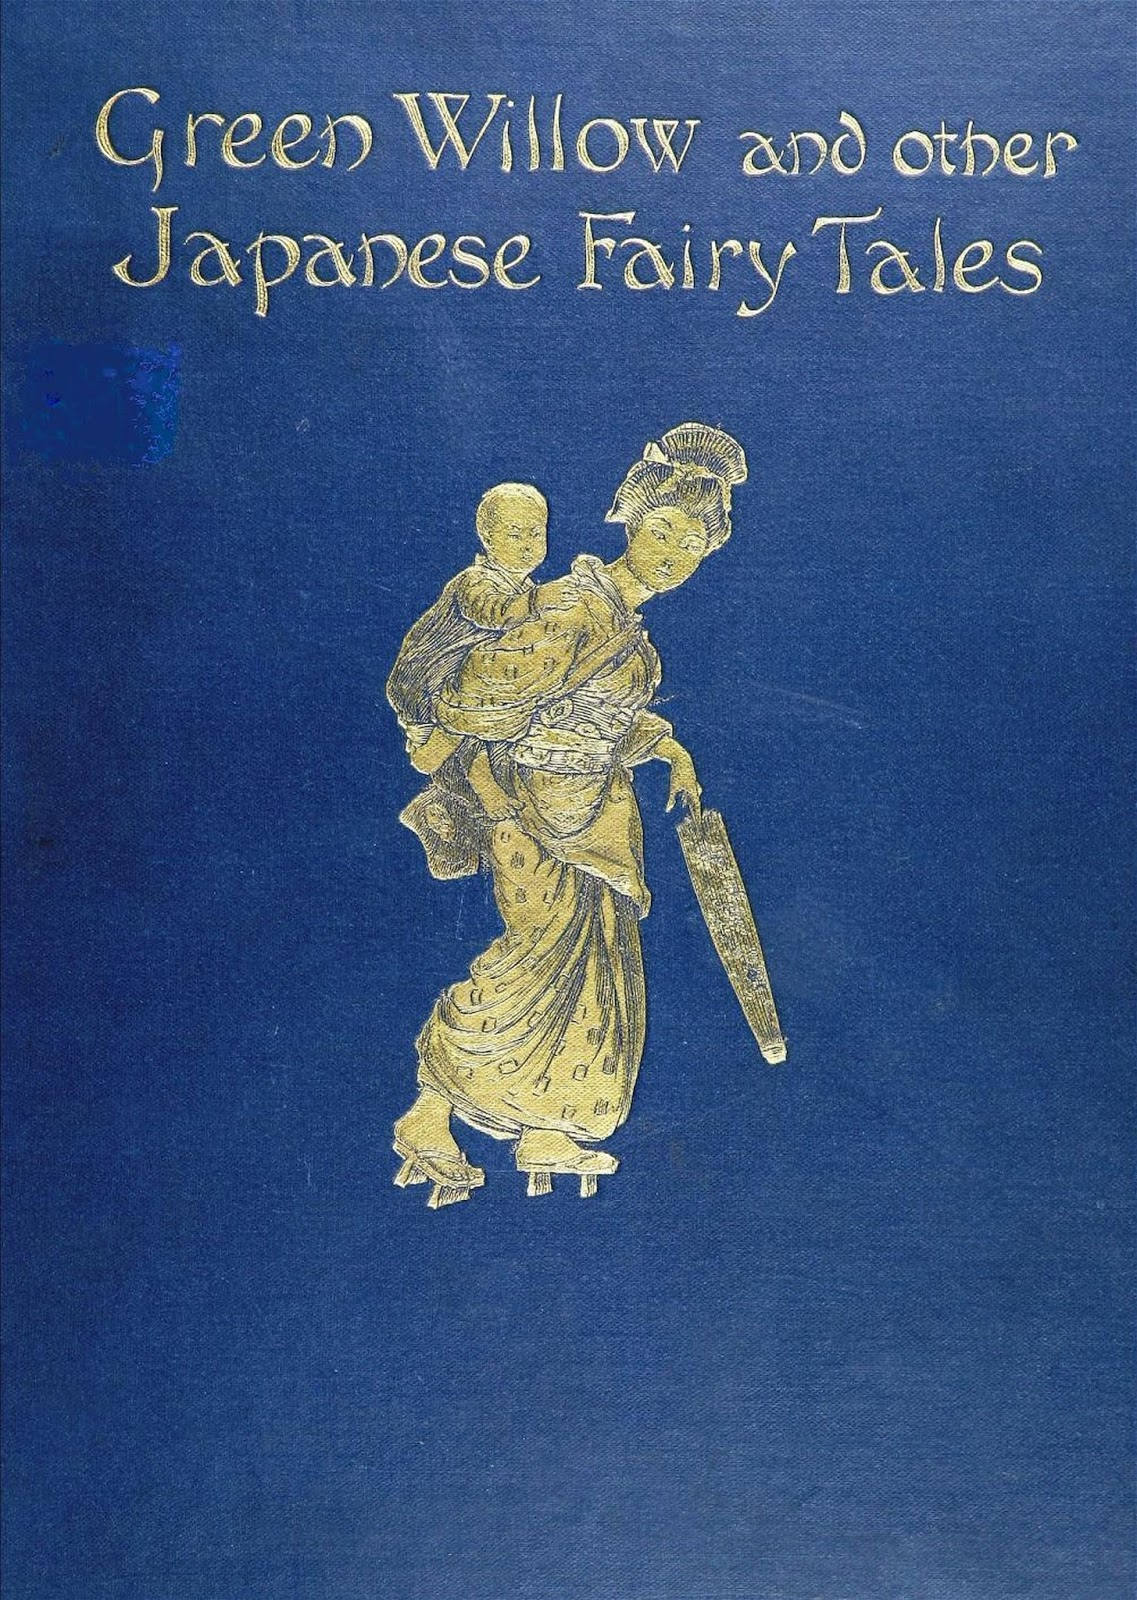 green willow japanese literature Folktales asian folktales  japanese folktales  green willow and other japanese fairy tales at world of tales - stories for children from around the world.